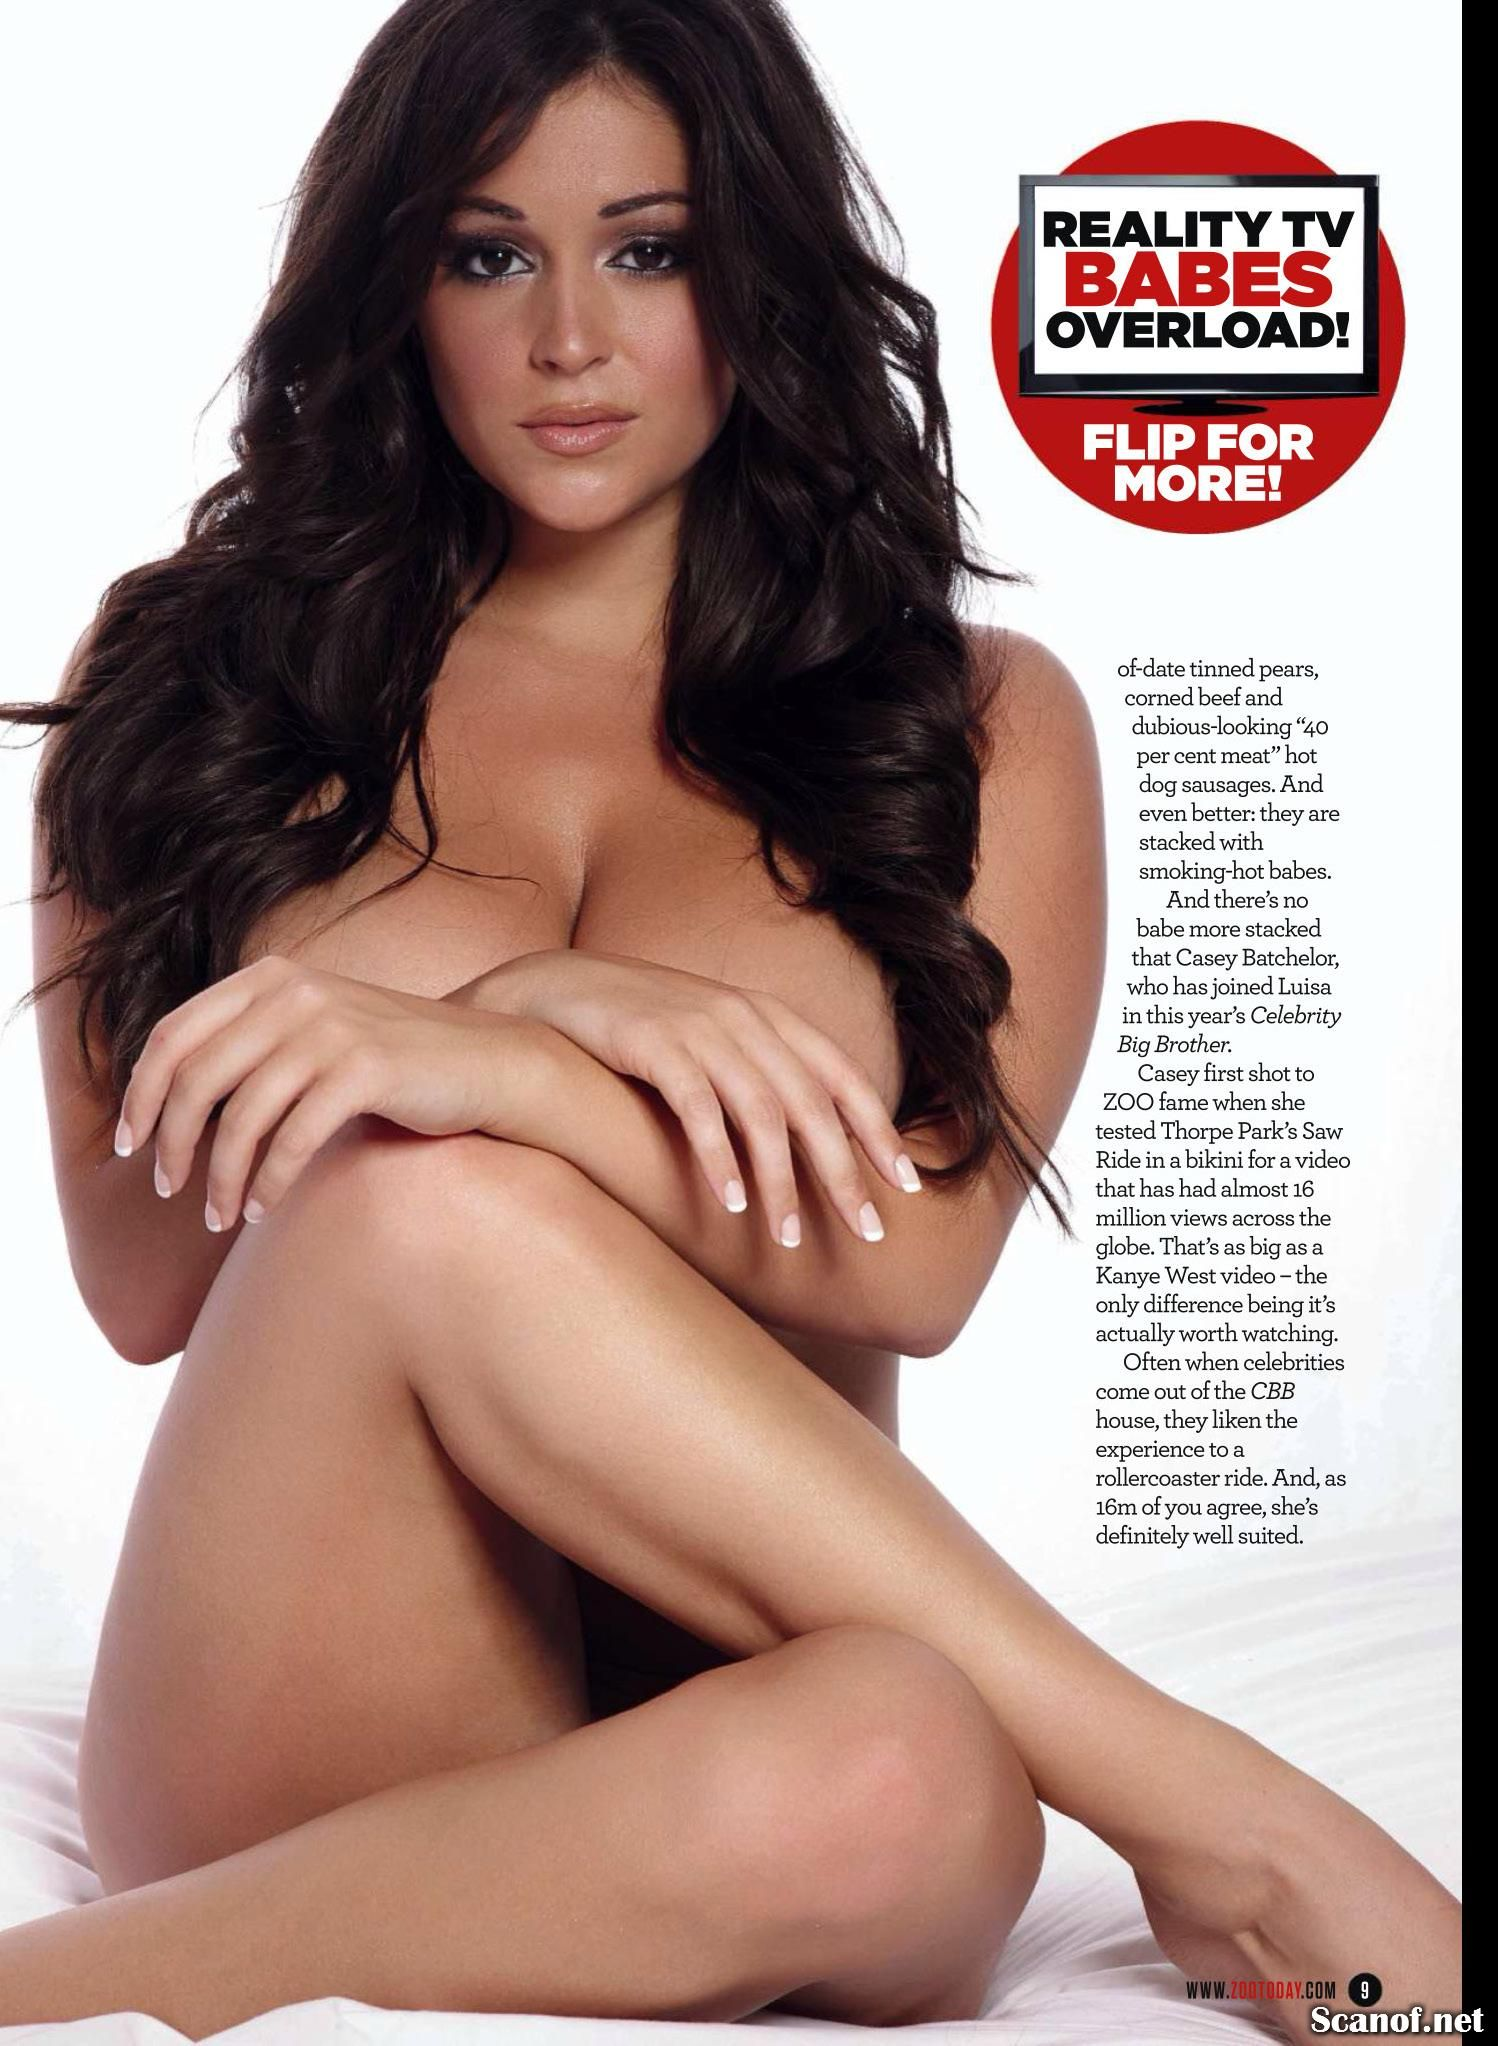 Sexy pics of casey batchelor naked (34 photo)